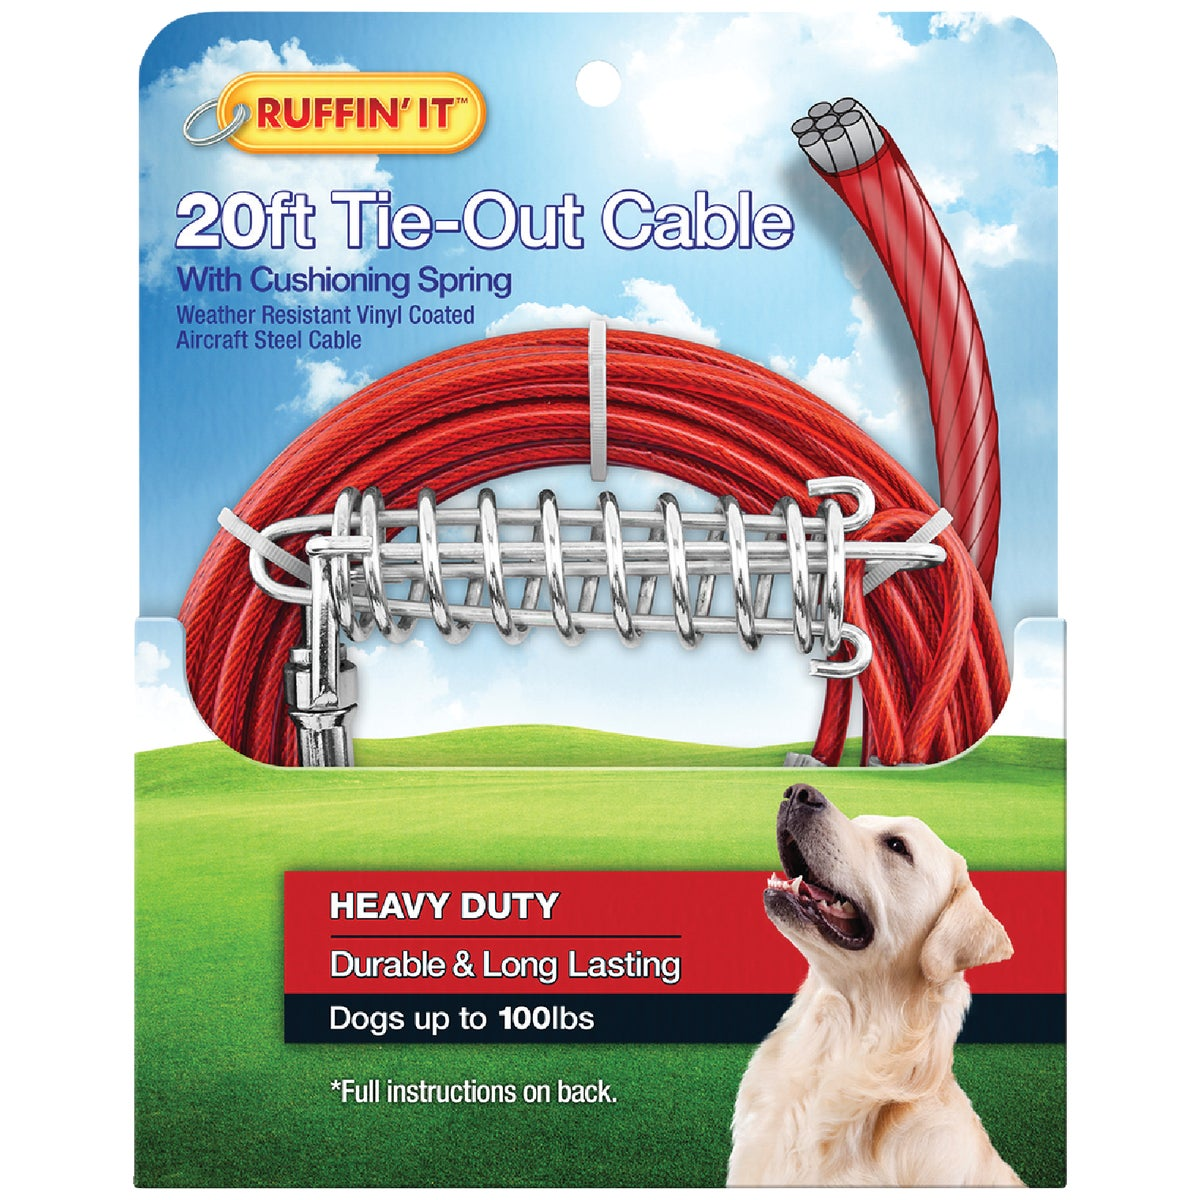 20' TIE-OUT CABLE